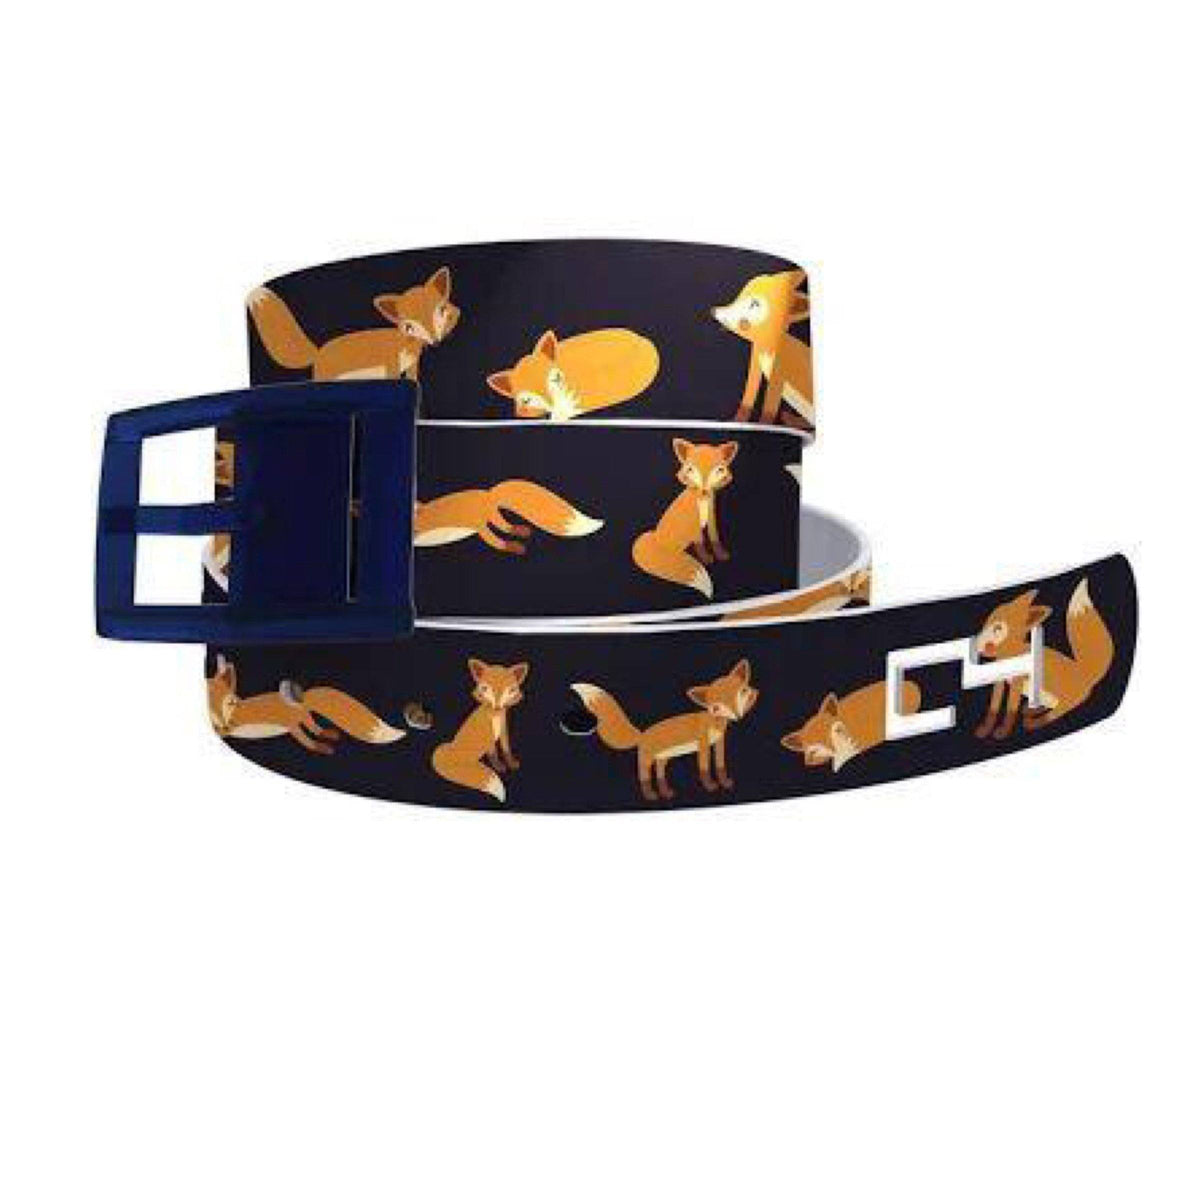 Belts - Matte Buckle C4 Foxes Playing Navy